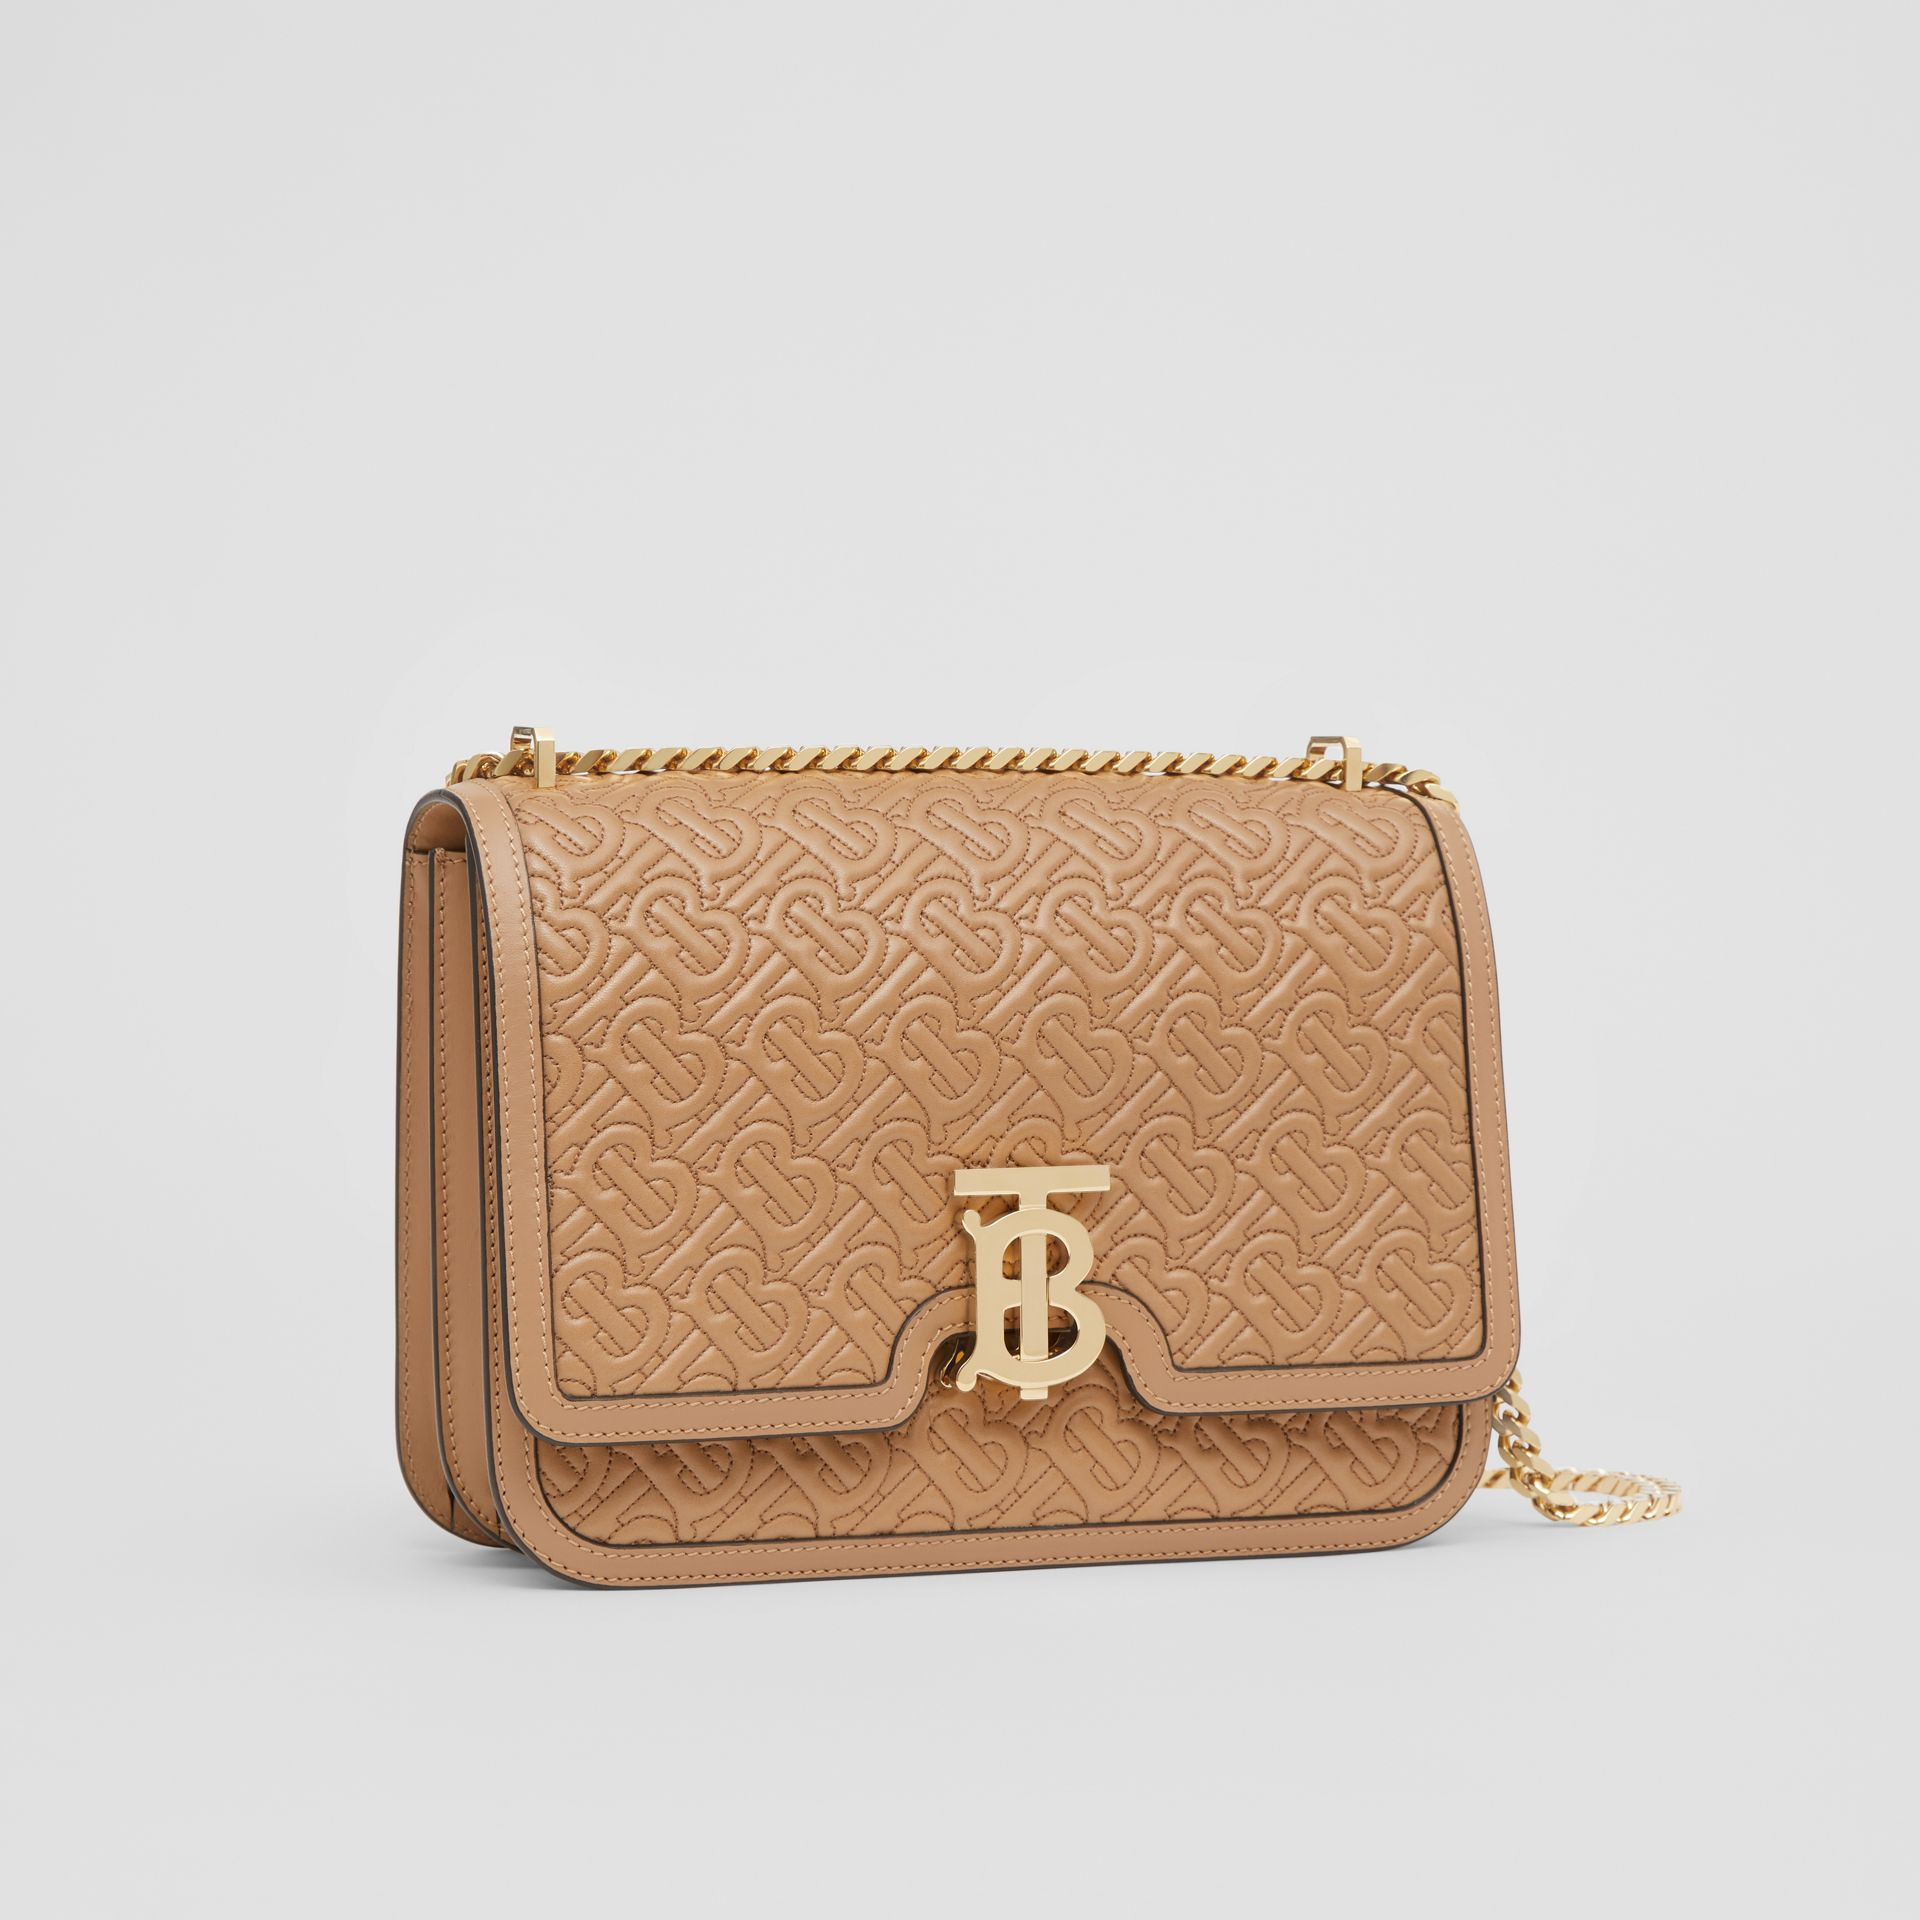 Medium Quilted Monogram Lambskin TB Bag in Honey - Women | Burberry United Kingdom - gallery image 6